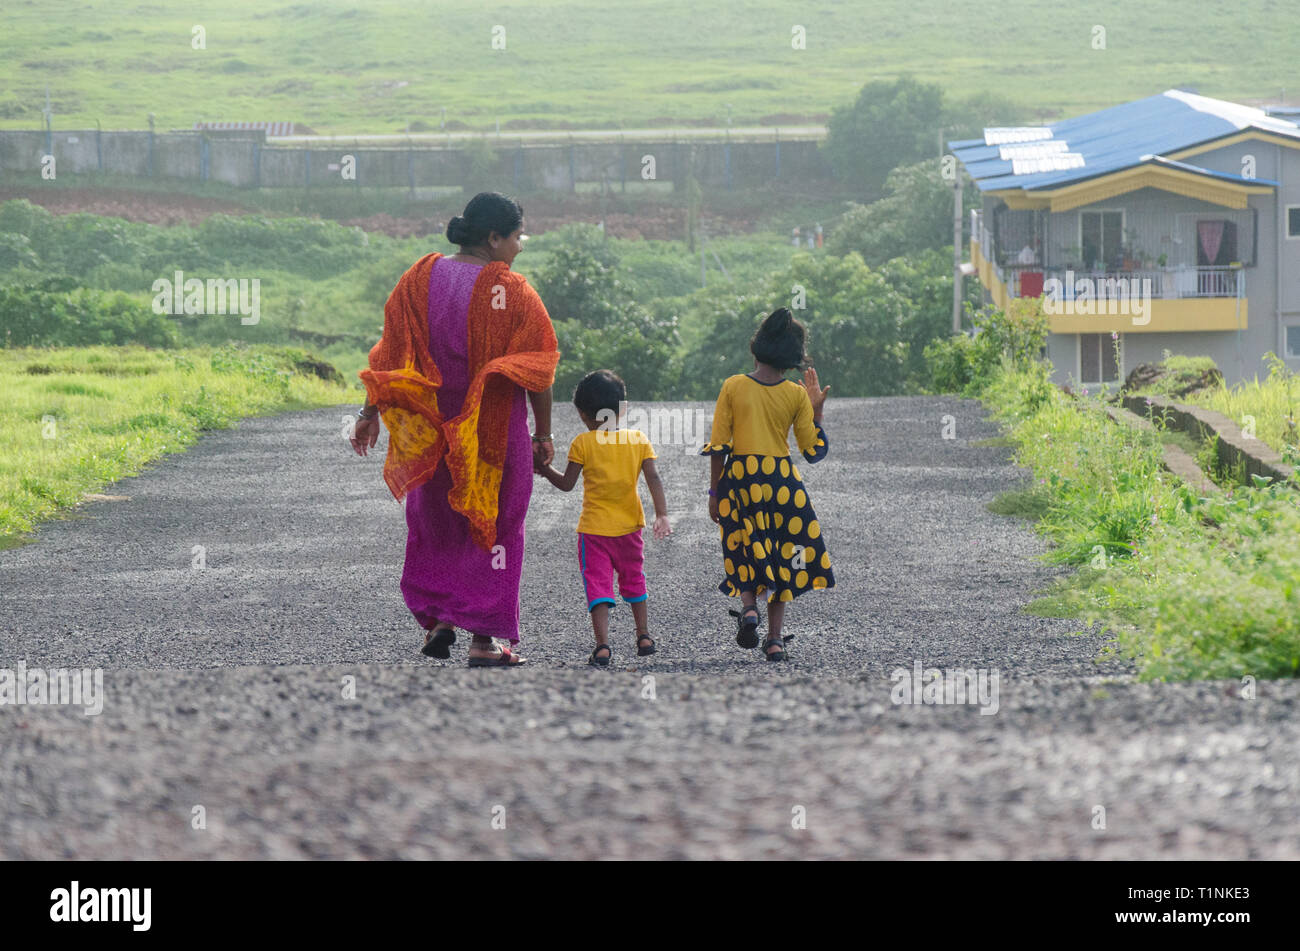 View from back of an Indian mother with her two young daughters returning home after an evening stroll. - Stock Image